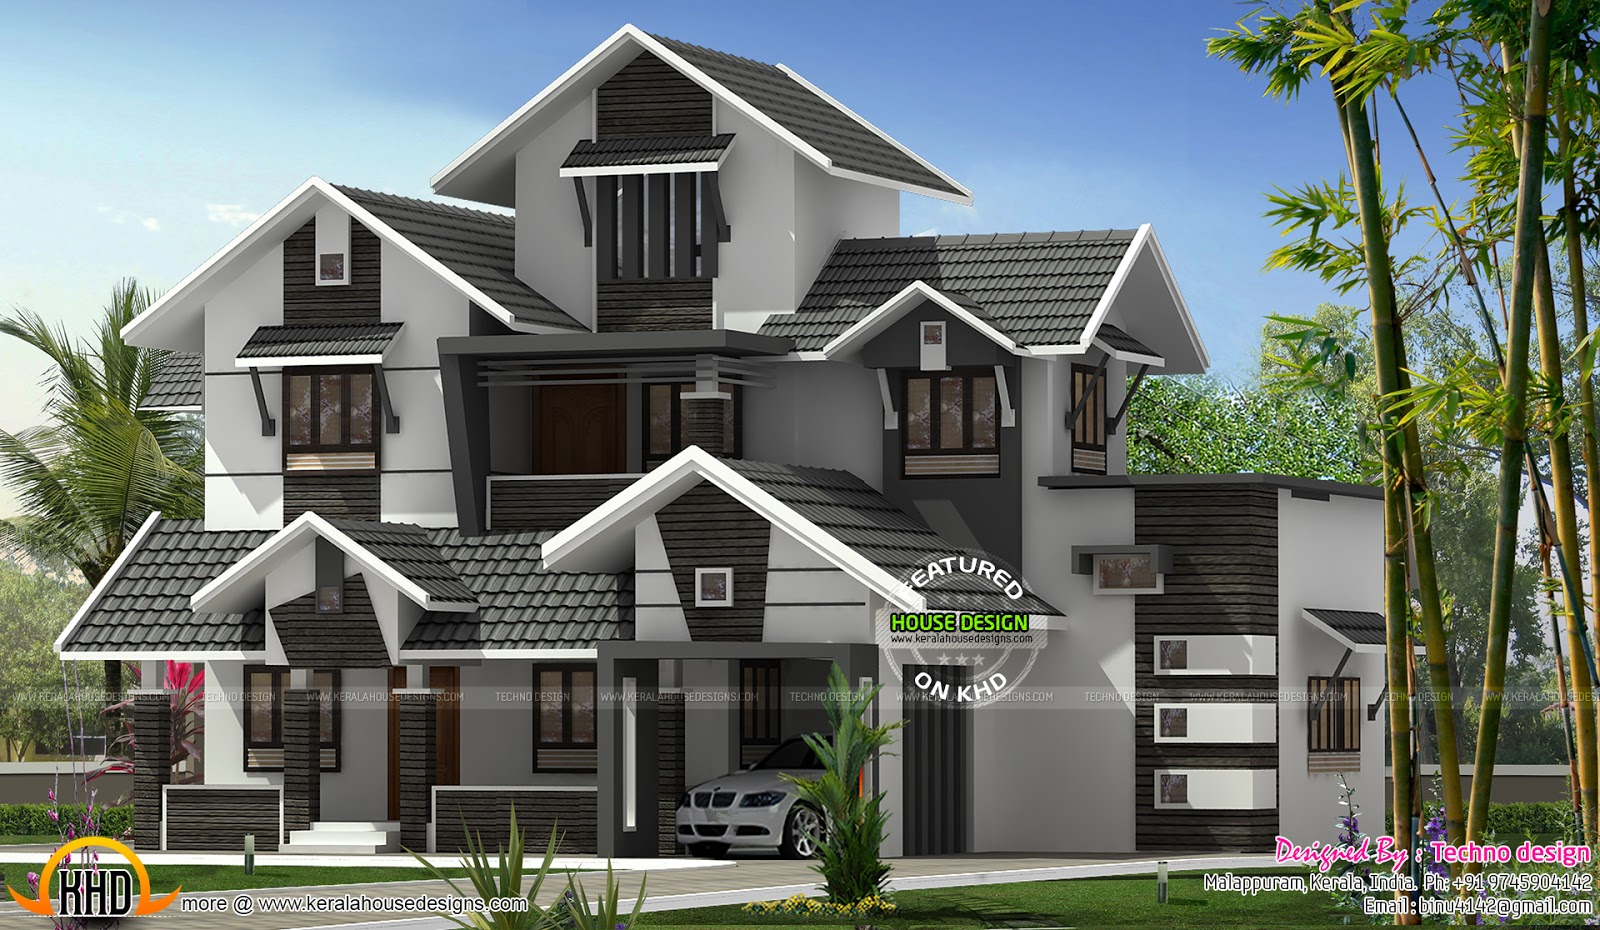 Contemporary Home Designs At Malappuram Part - 44: Square Feet Bedroom Kerala Style Modern Mix Home Design Contemporary Villa